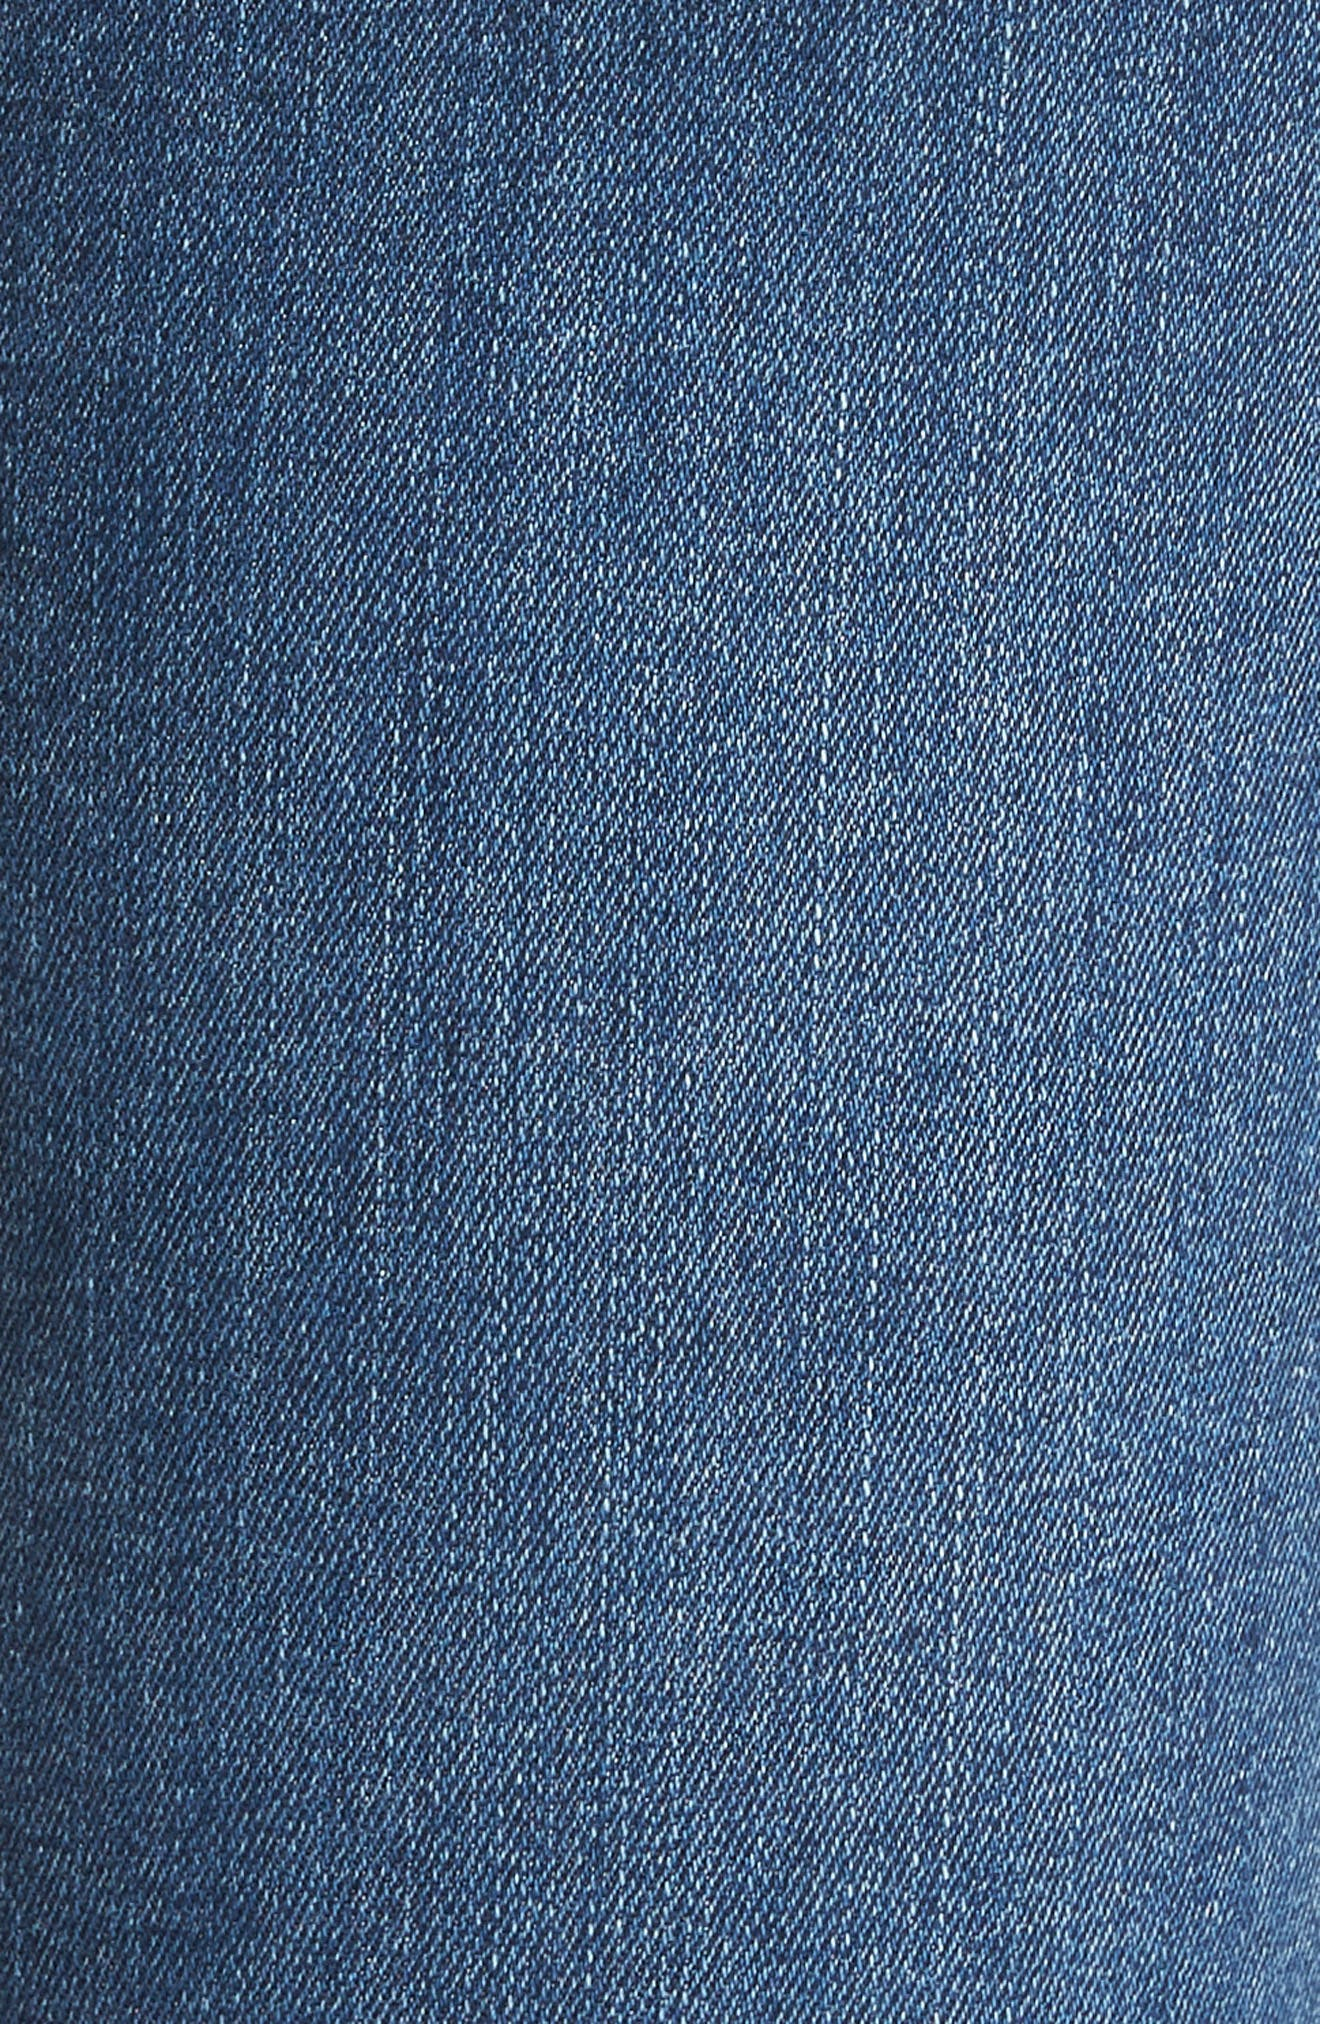 Hoxton High Waist Ankle Skinny Jeans,                             Alternate thumbnail 6, color,                             Bloomfield